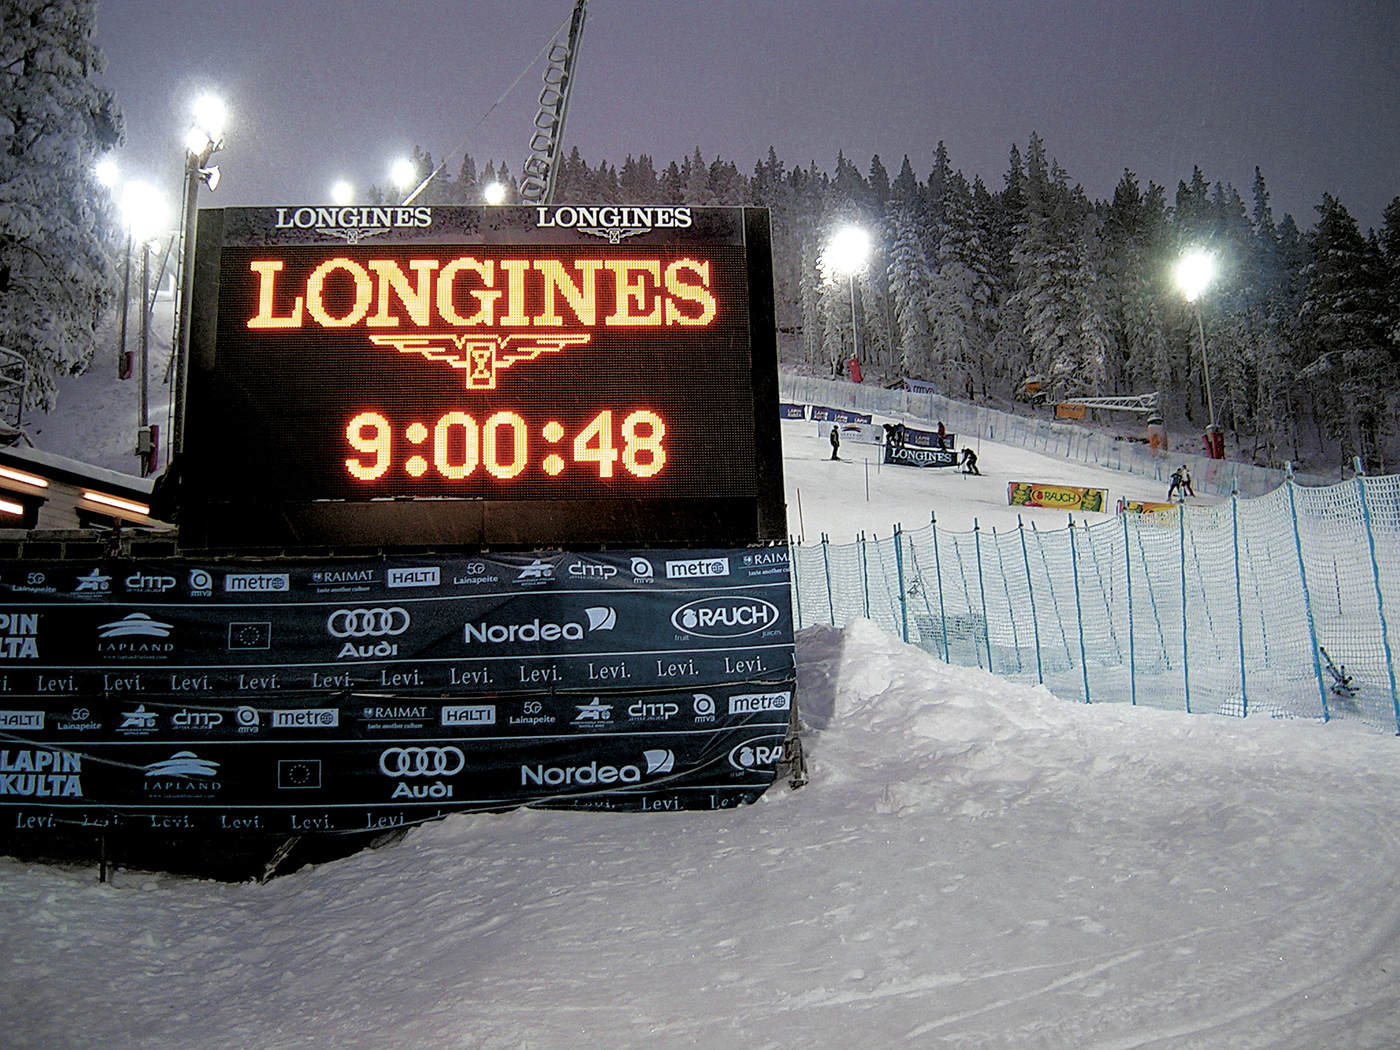 Longines Alpine Skiing Event: Longines and alpine skiing – a successful partnership continues 3